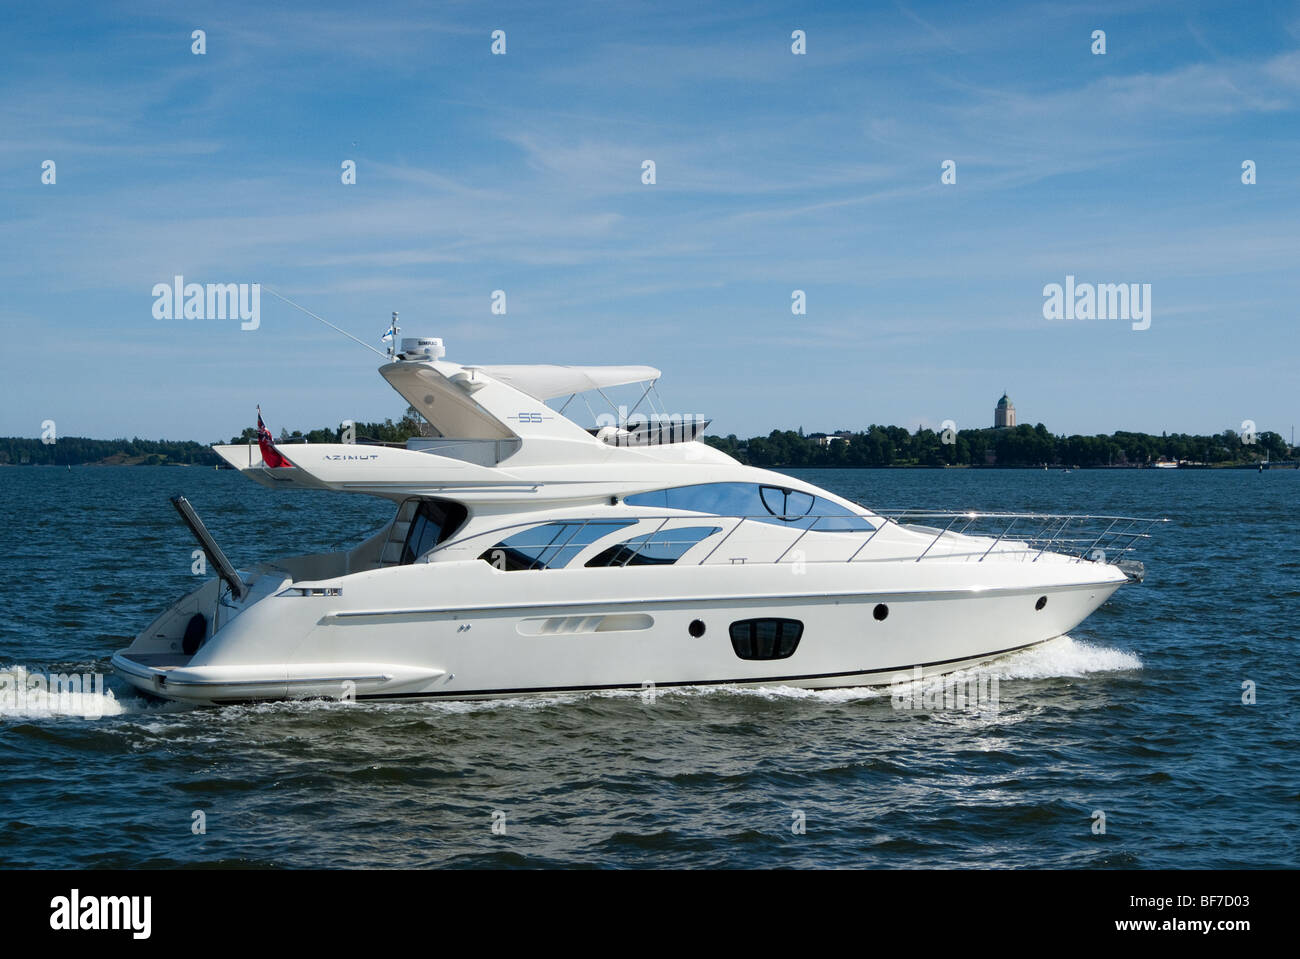 Motor boat in Helsinki harbour - Stock Image